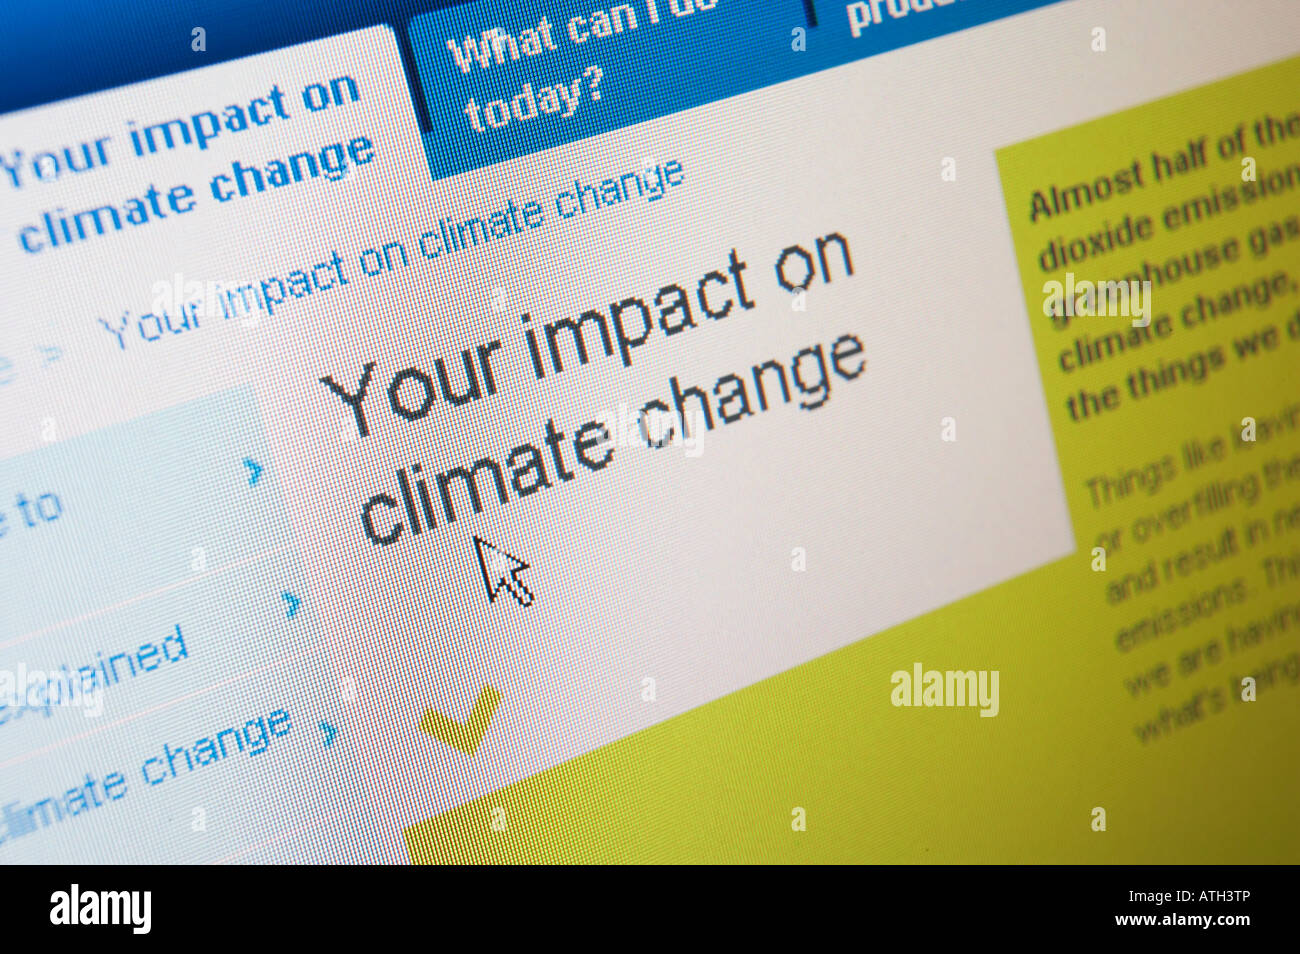 INTERNET WEB SITE ON COMPUTER SCREEN SHOWING CLIMATE CHANGE - Stock Image